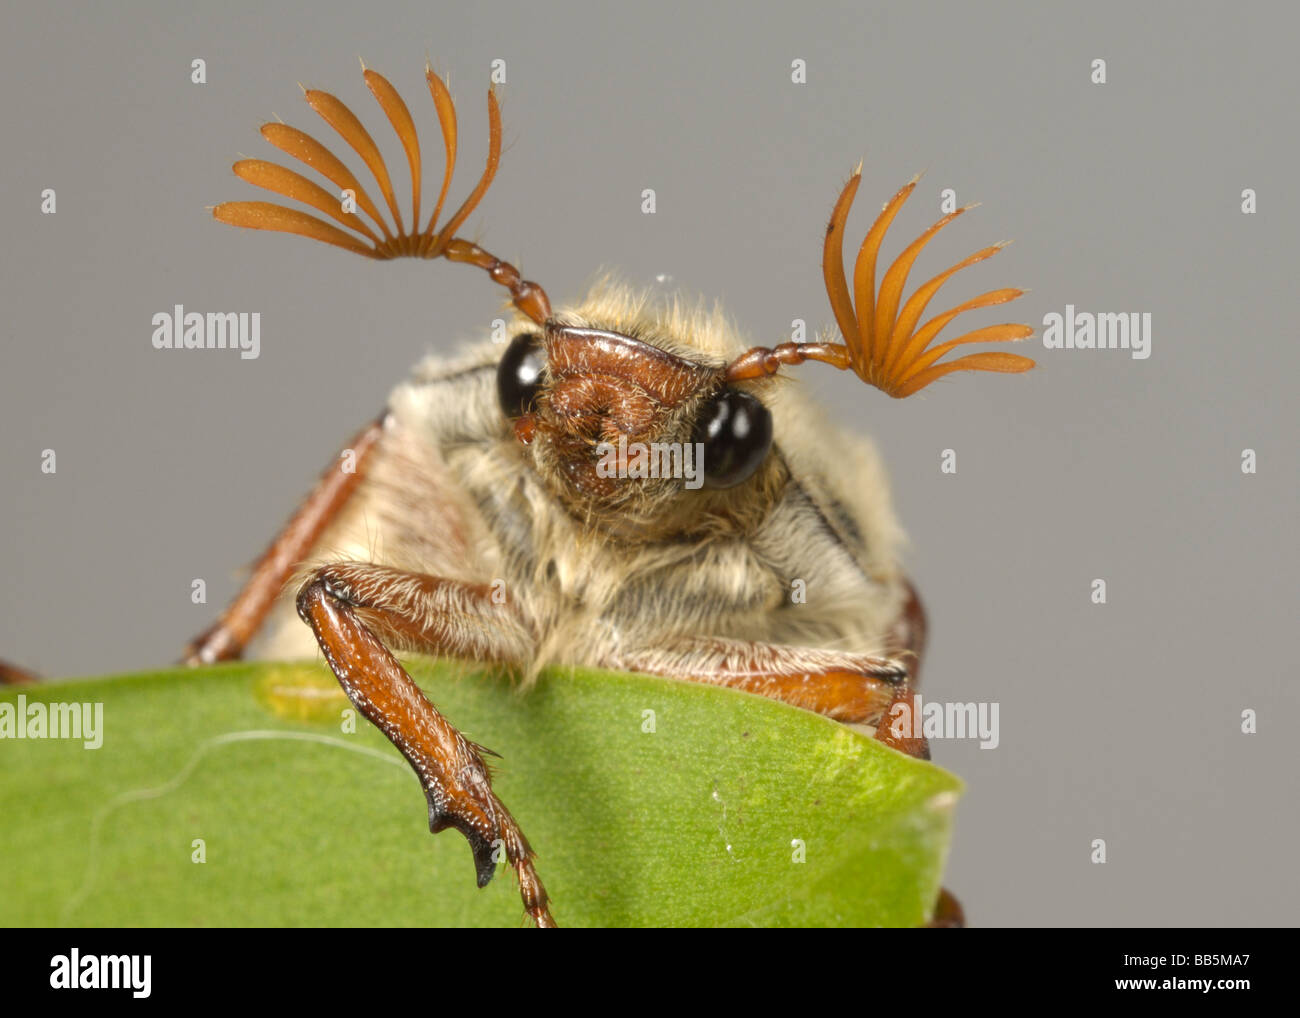 Head and antennae of an adult cockchafer Melolontha melolontha or may bug on a leaf Stock Photo